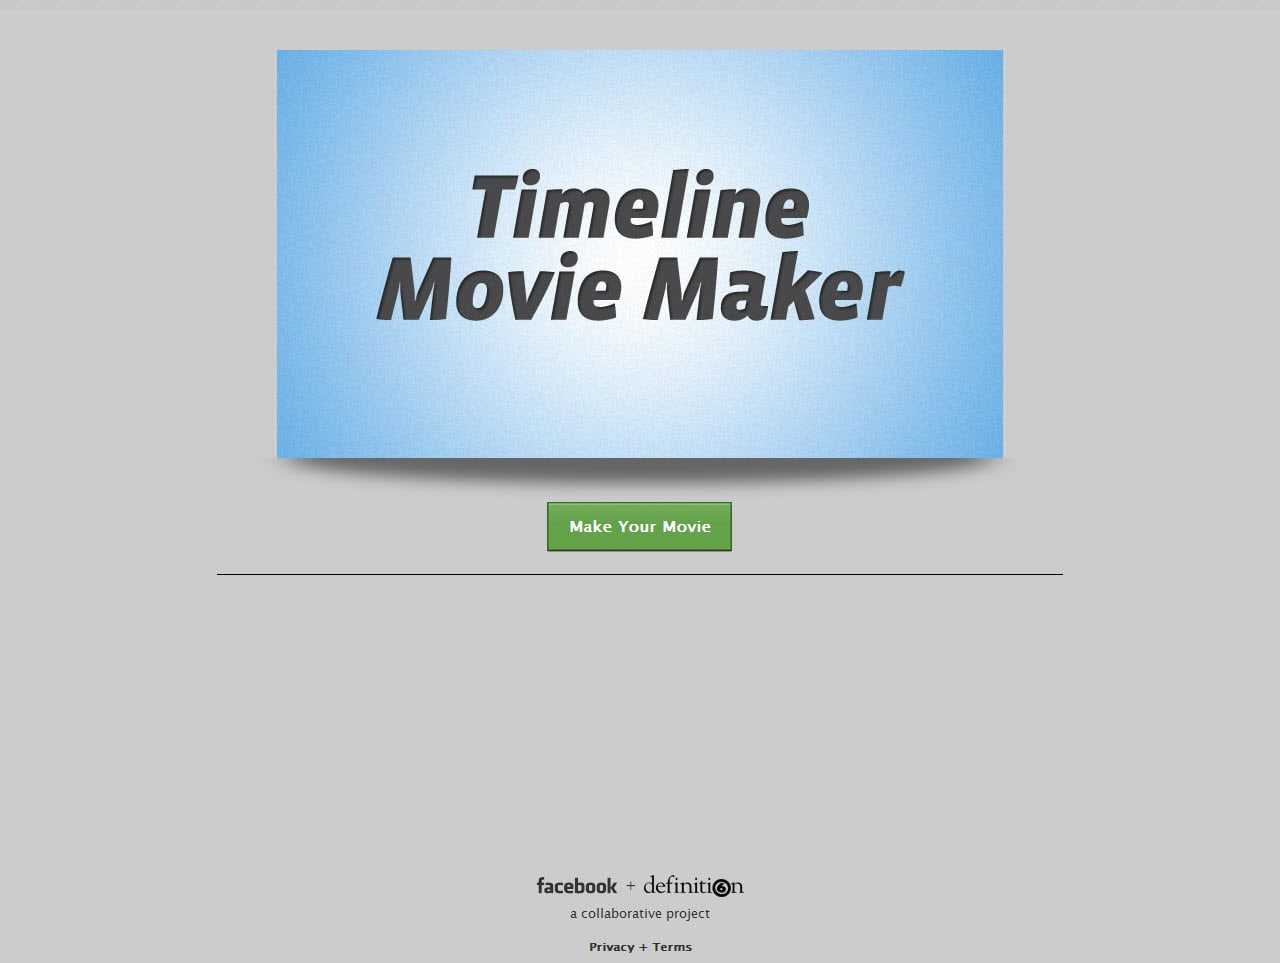 Timeline Movie Maker